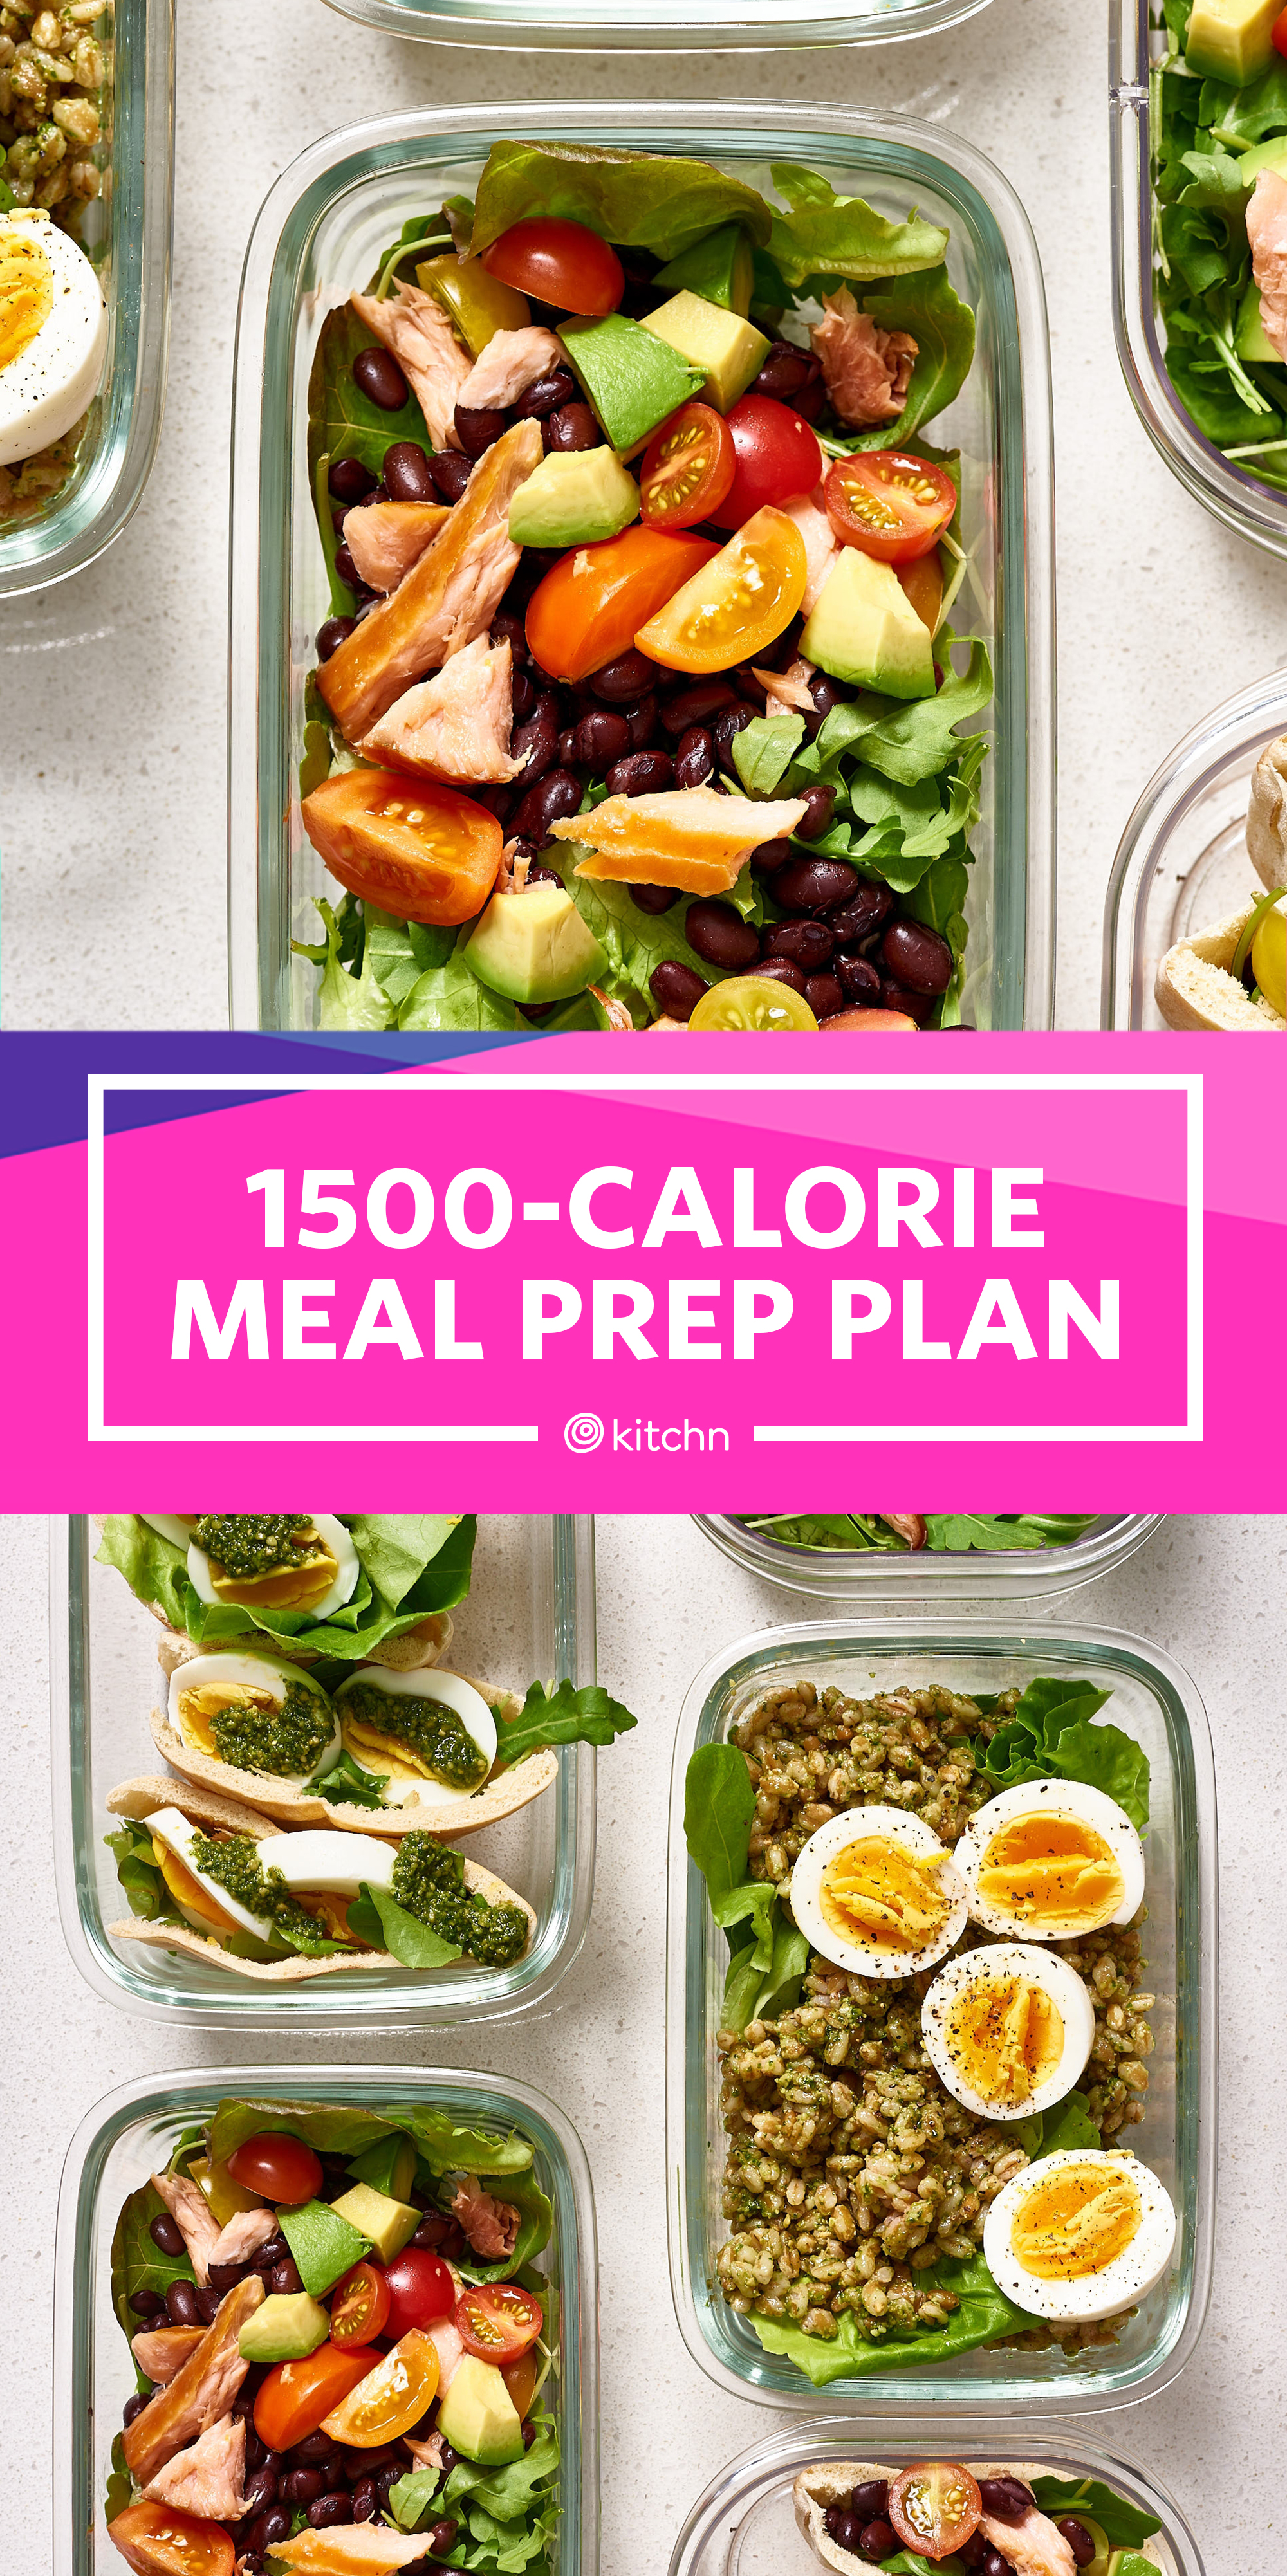 1500-calorie diet plan recipes for easy healthy meals